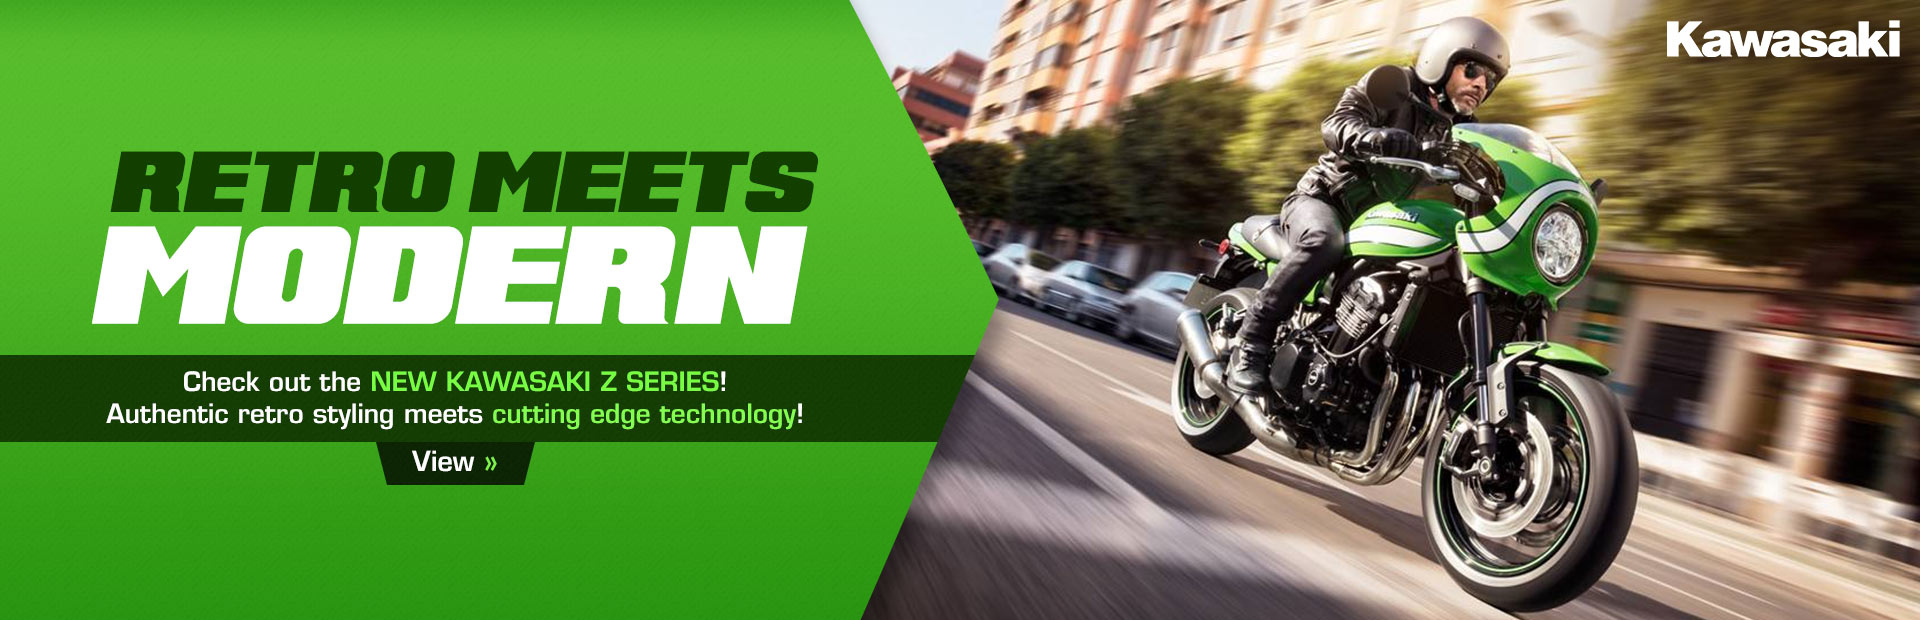 Check out the new Kawasaki Z Series!